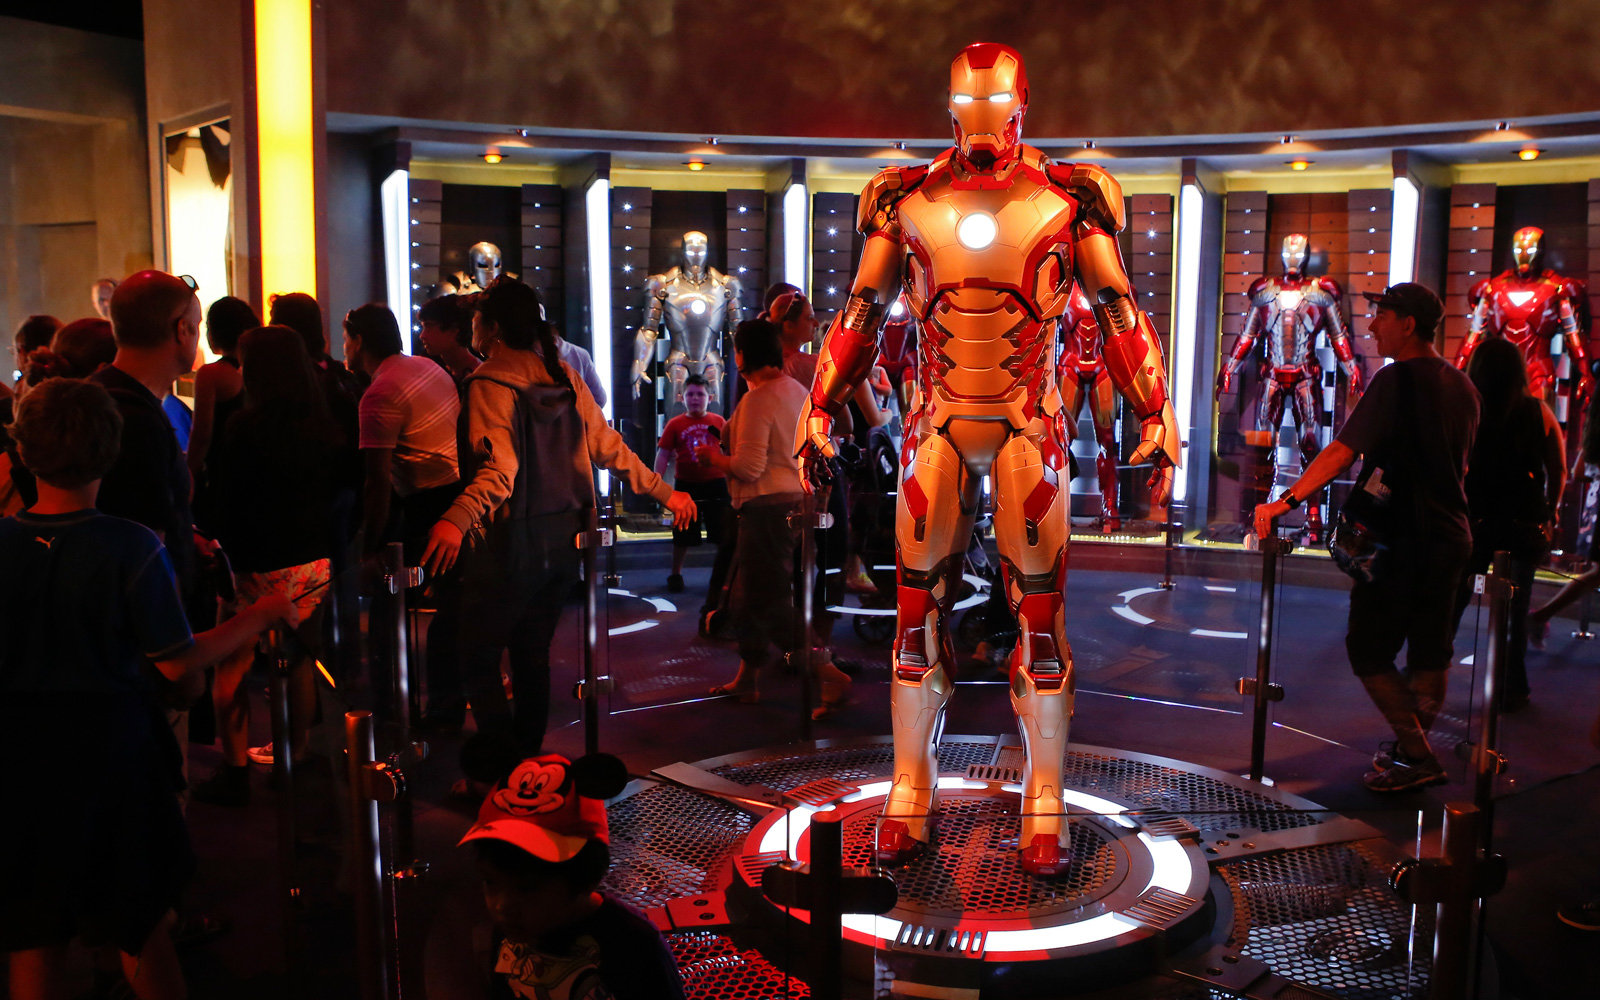 Marvel-themed land heading to Disneyland Resort